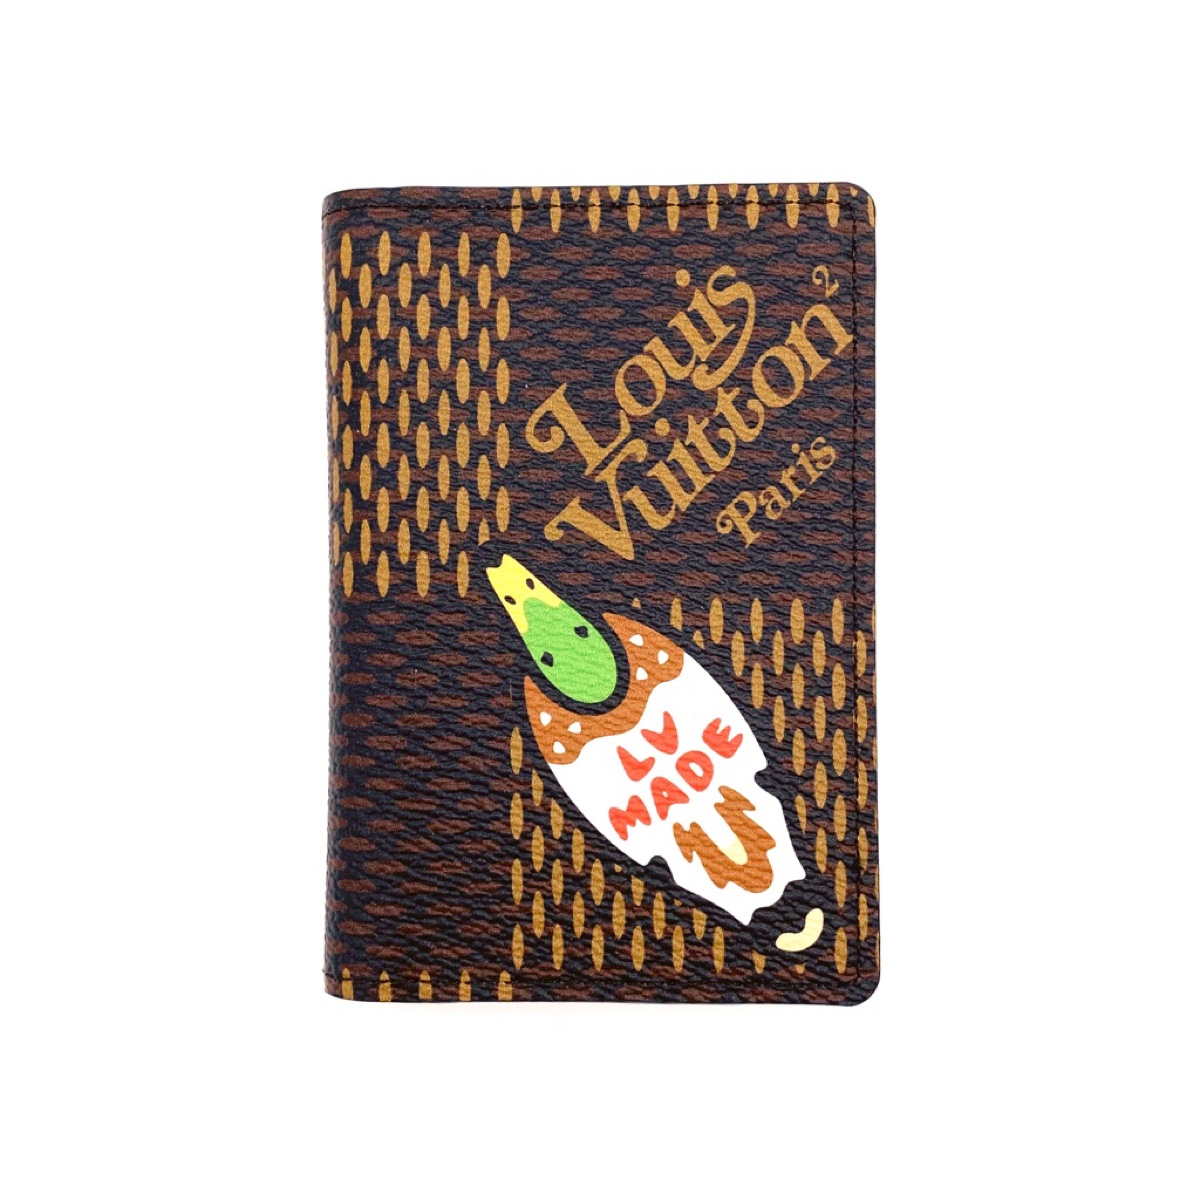 Louis Vuitton x Nigo Pocket Organiser